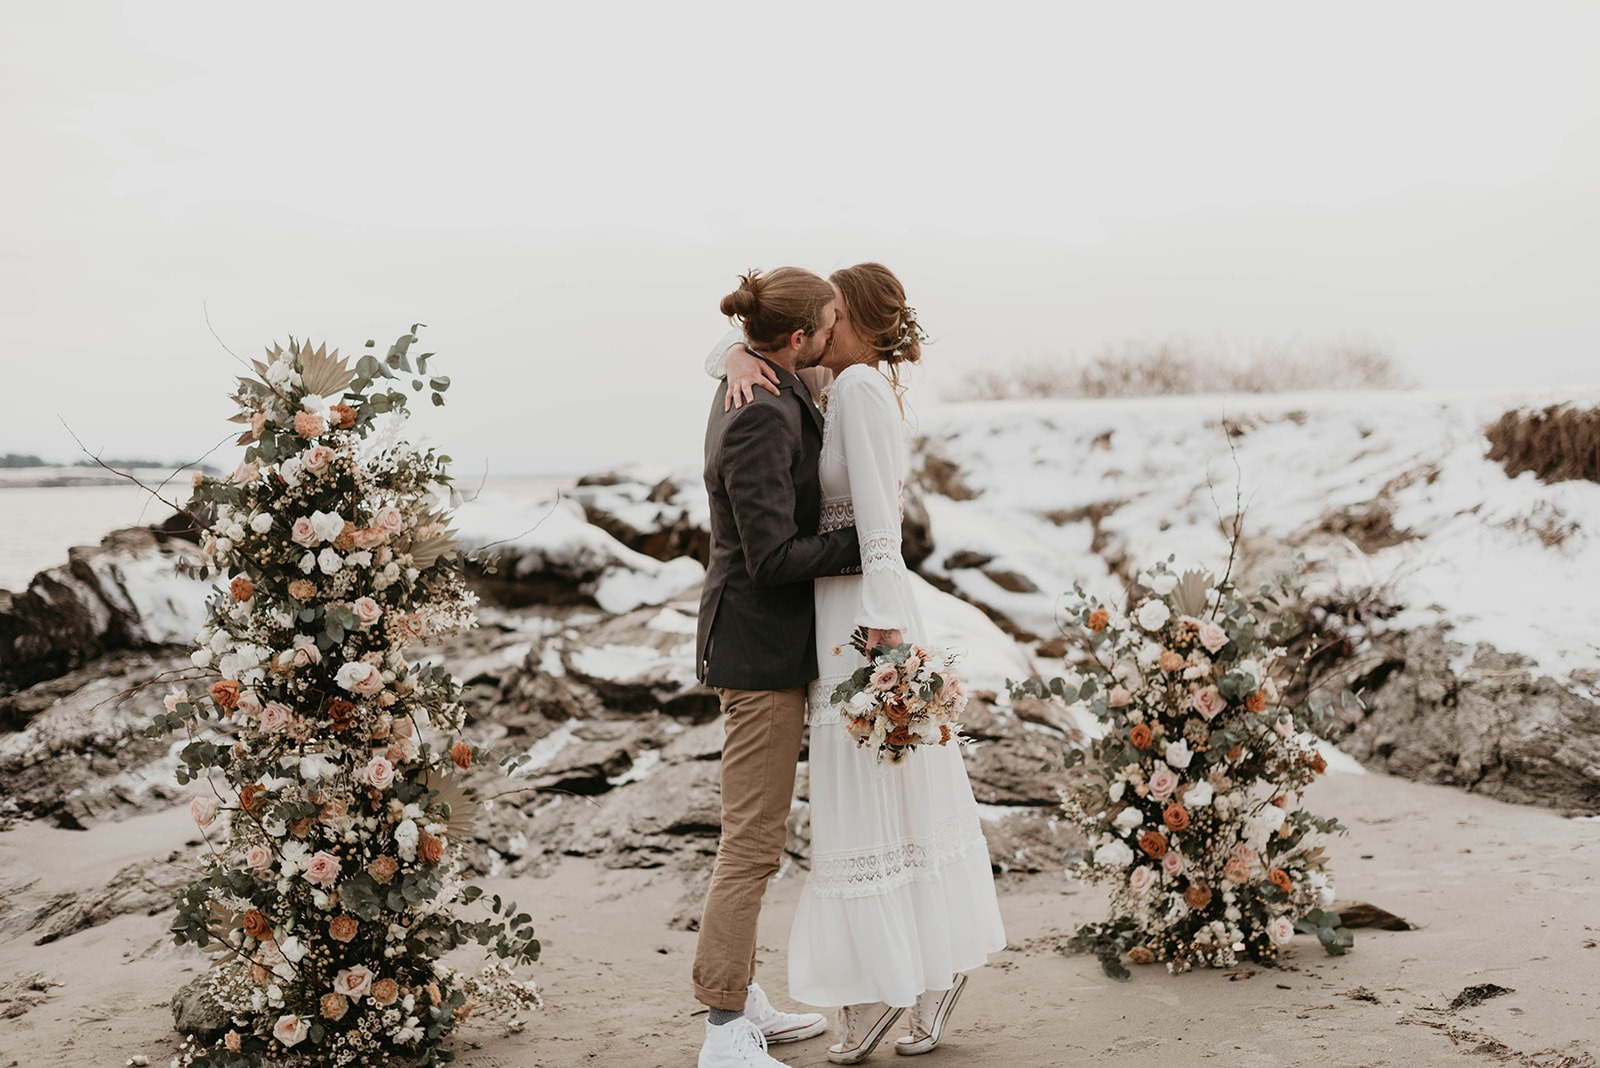 bride and groom getting married on beach